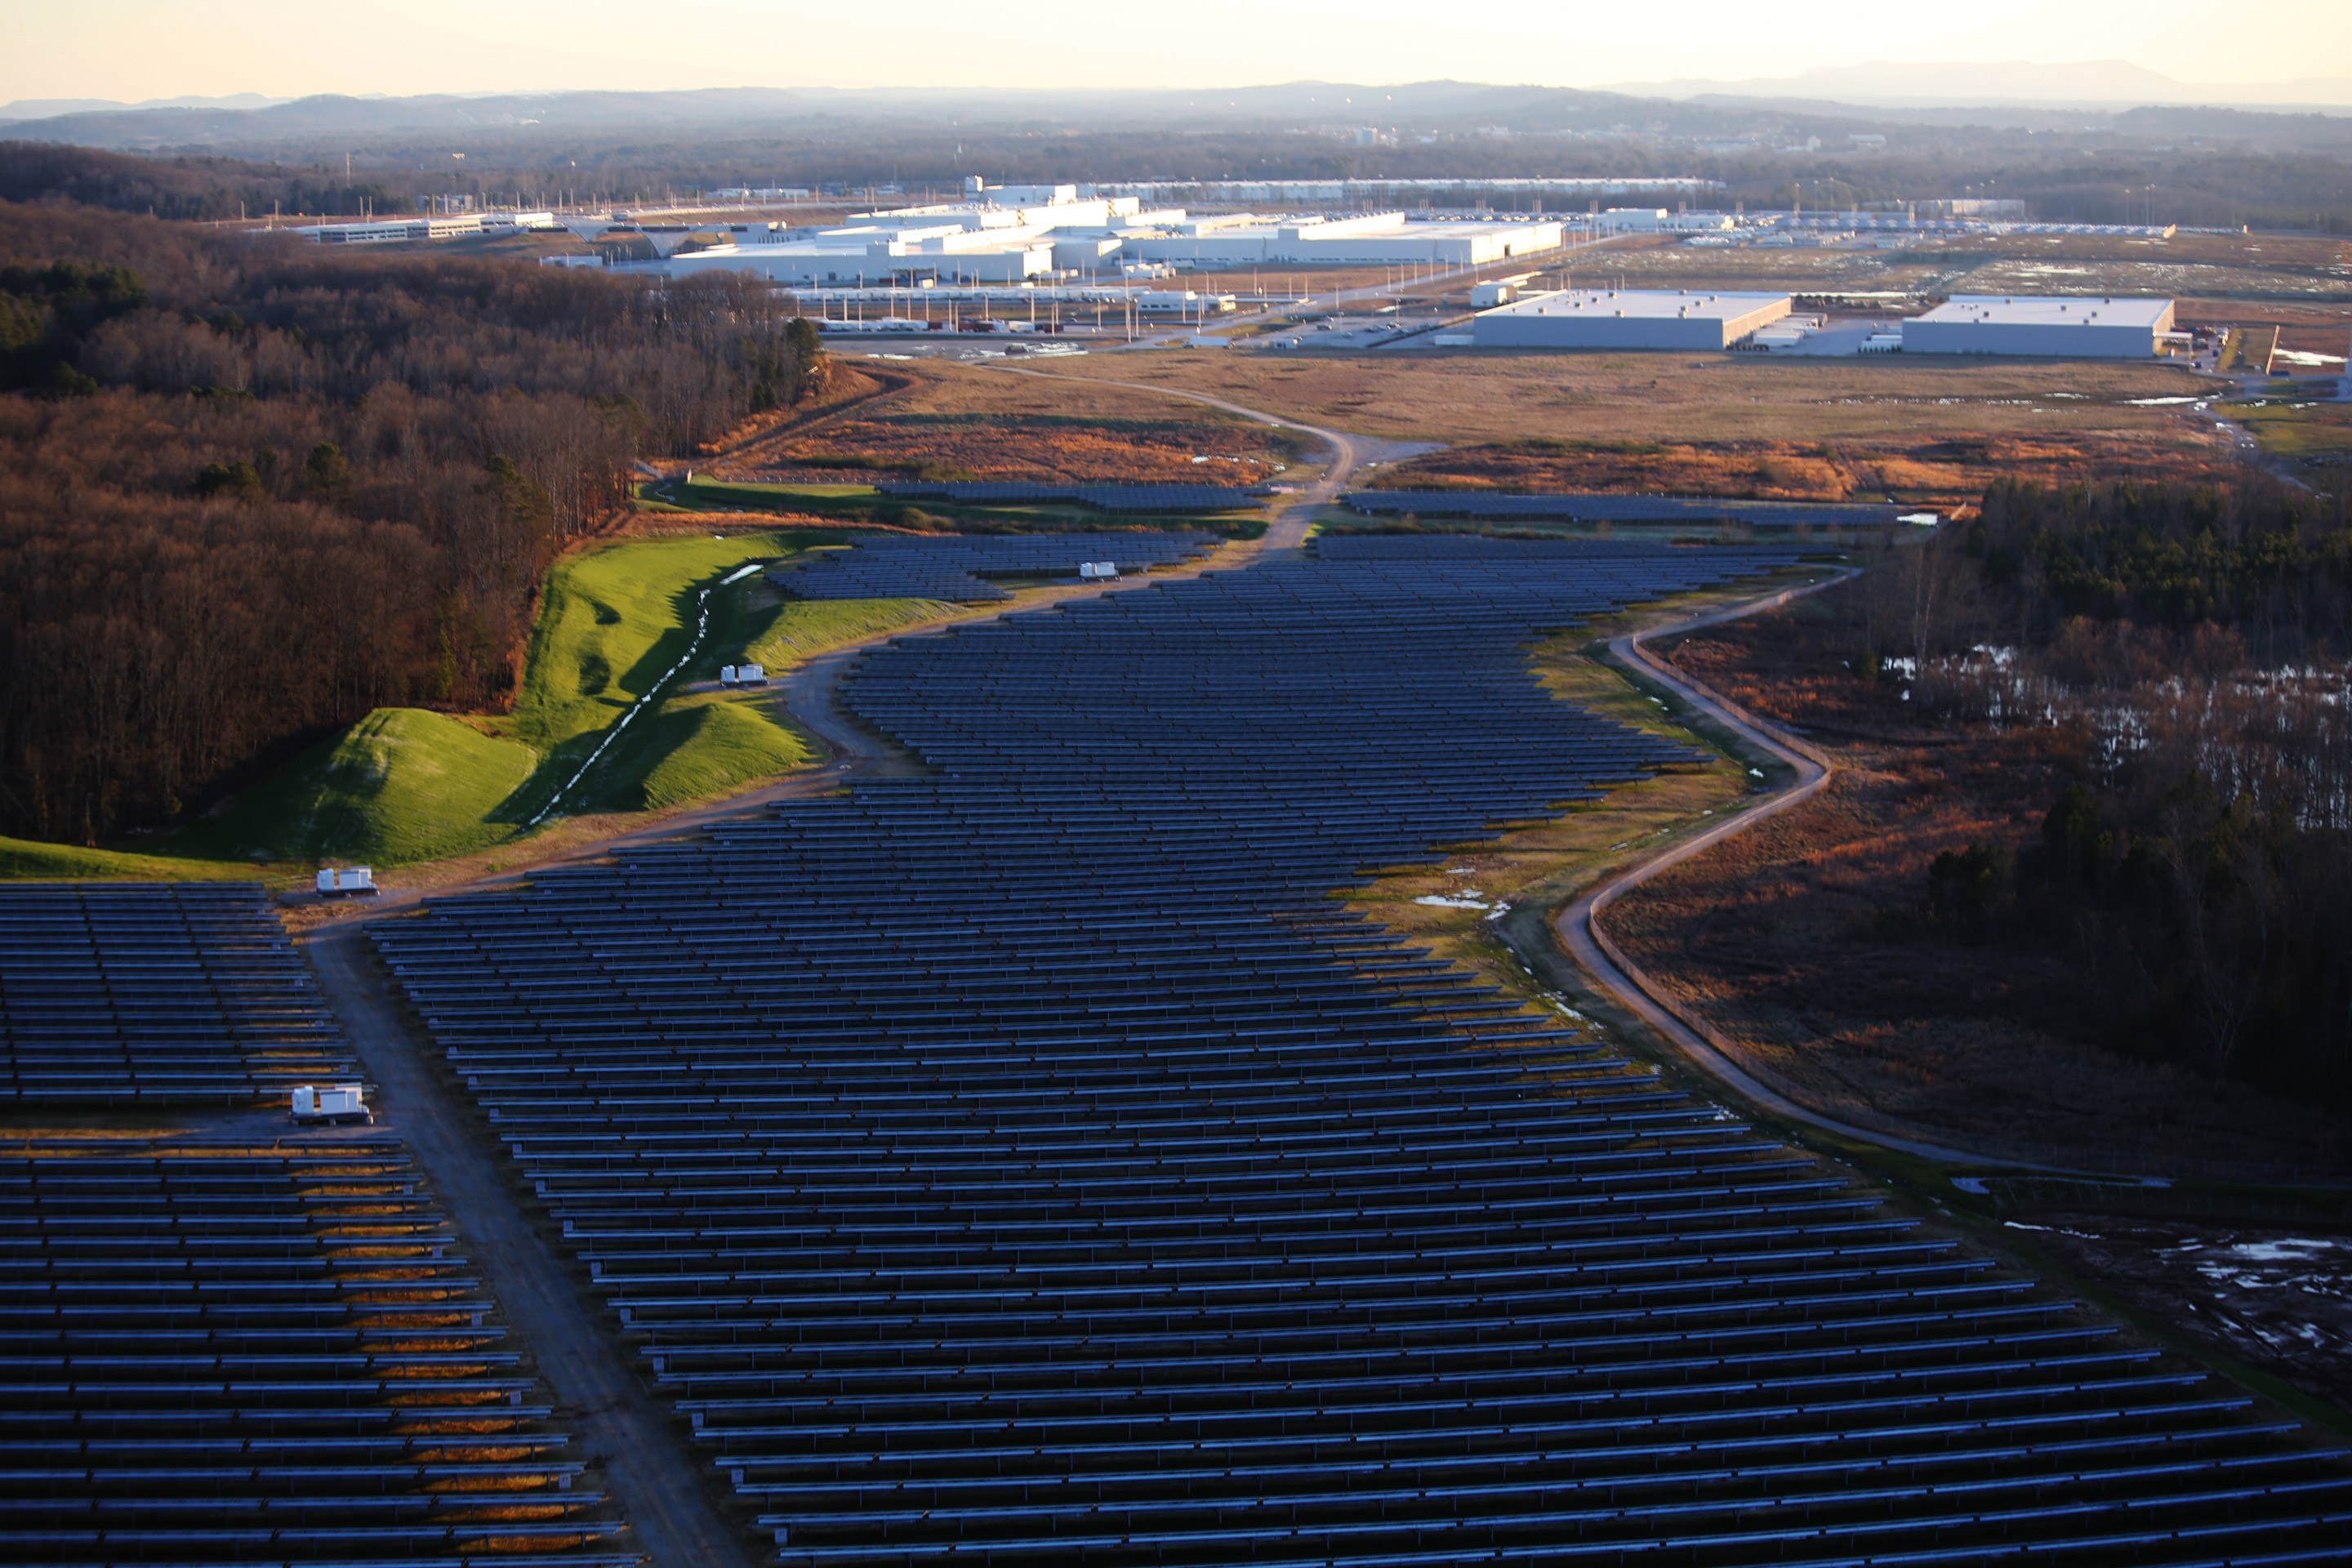 vw chattanooga solar farm 2 960x480